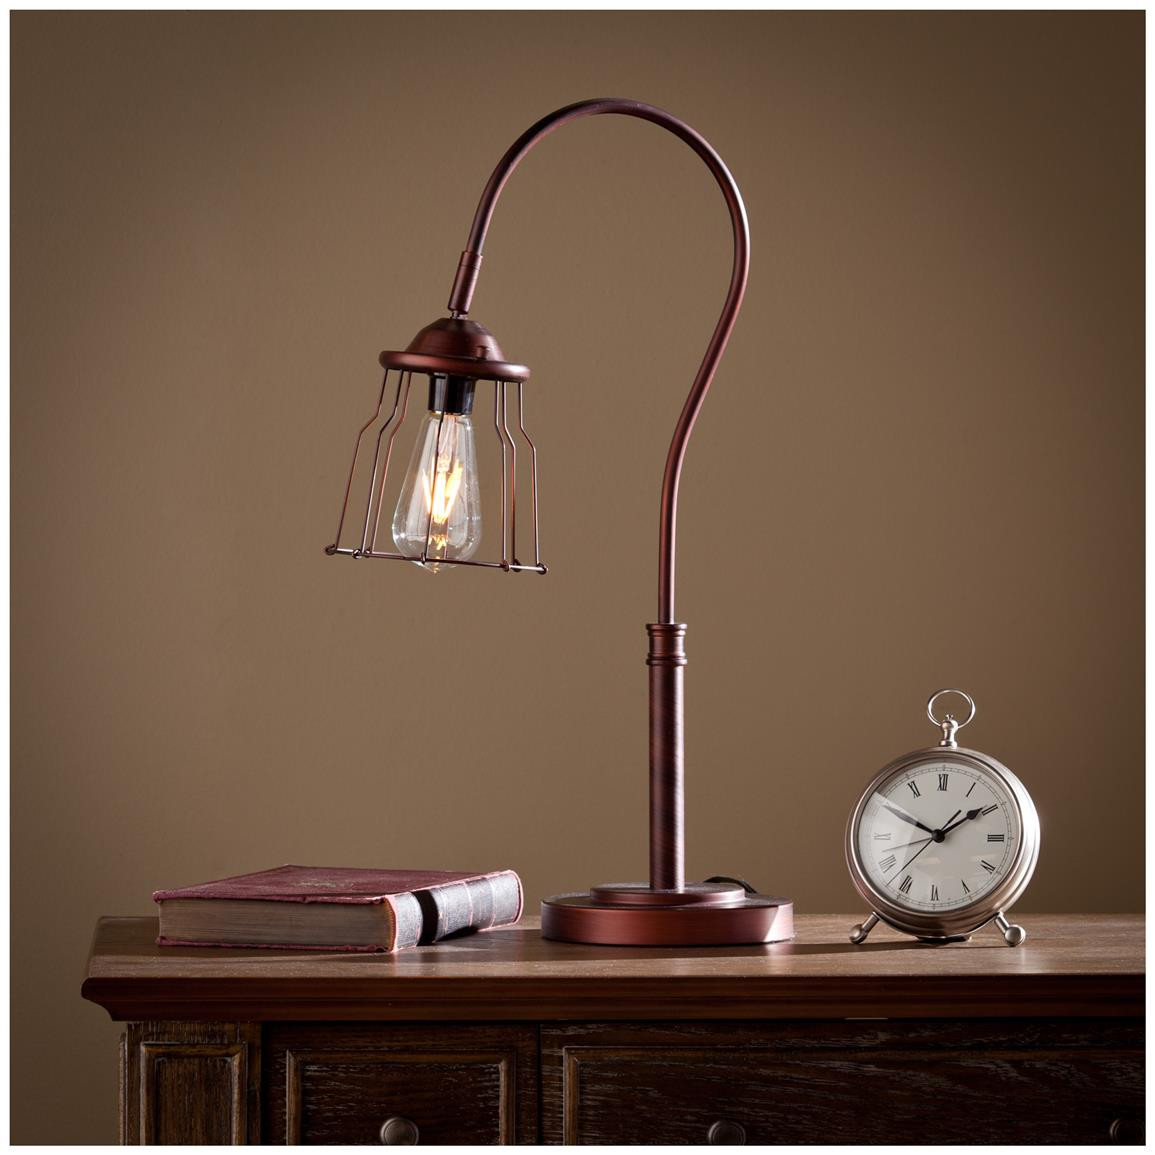 Best ideas about Edison Desk Lamp . Save or Pin Ogden Table Lamp Edison Bulb Lighting at Now.